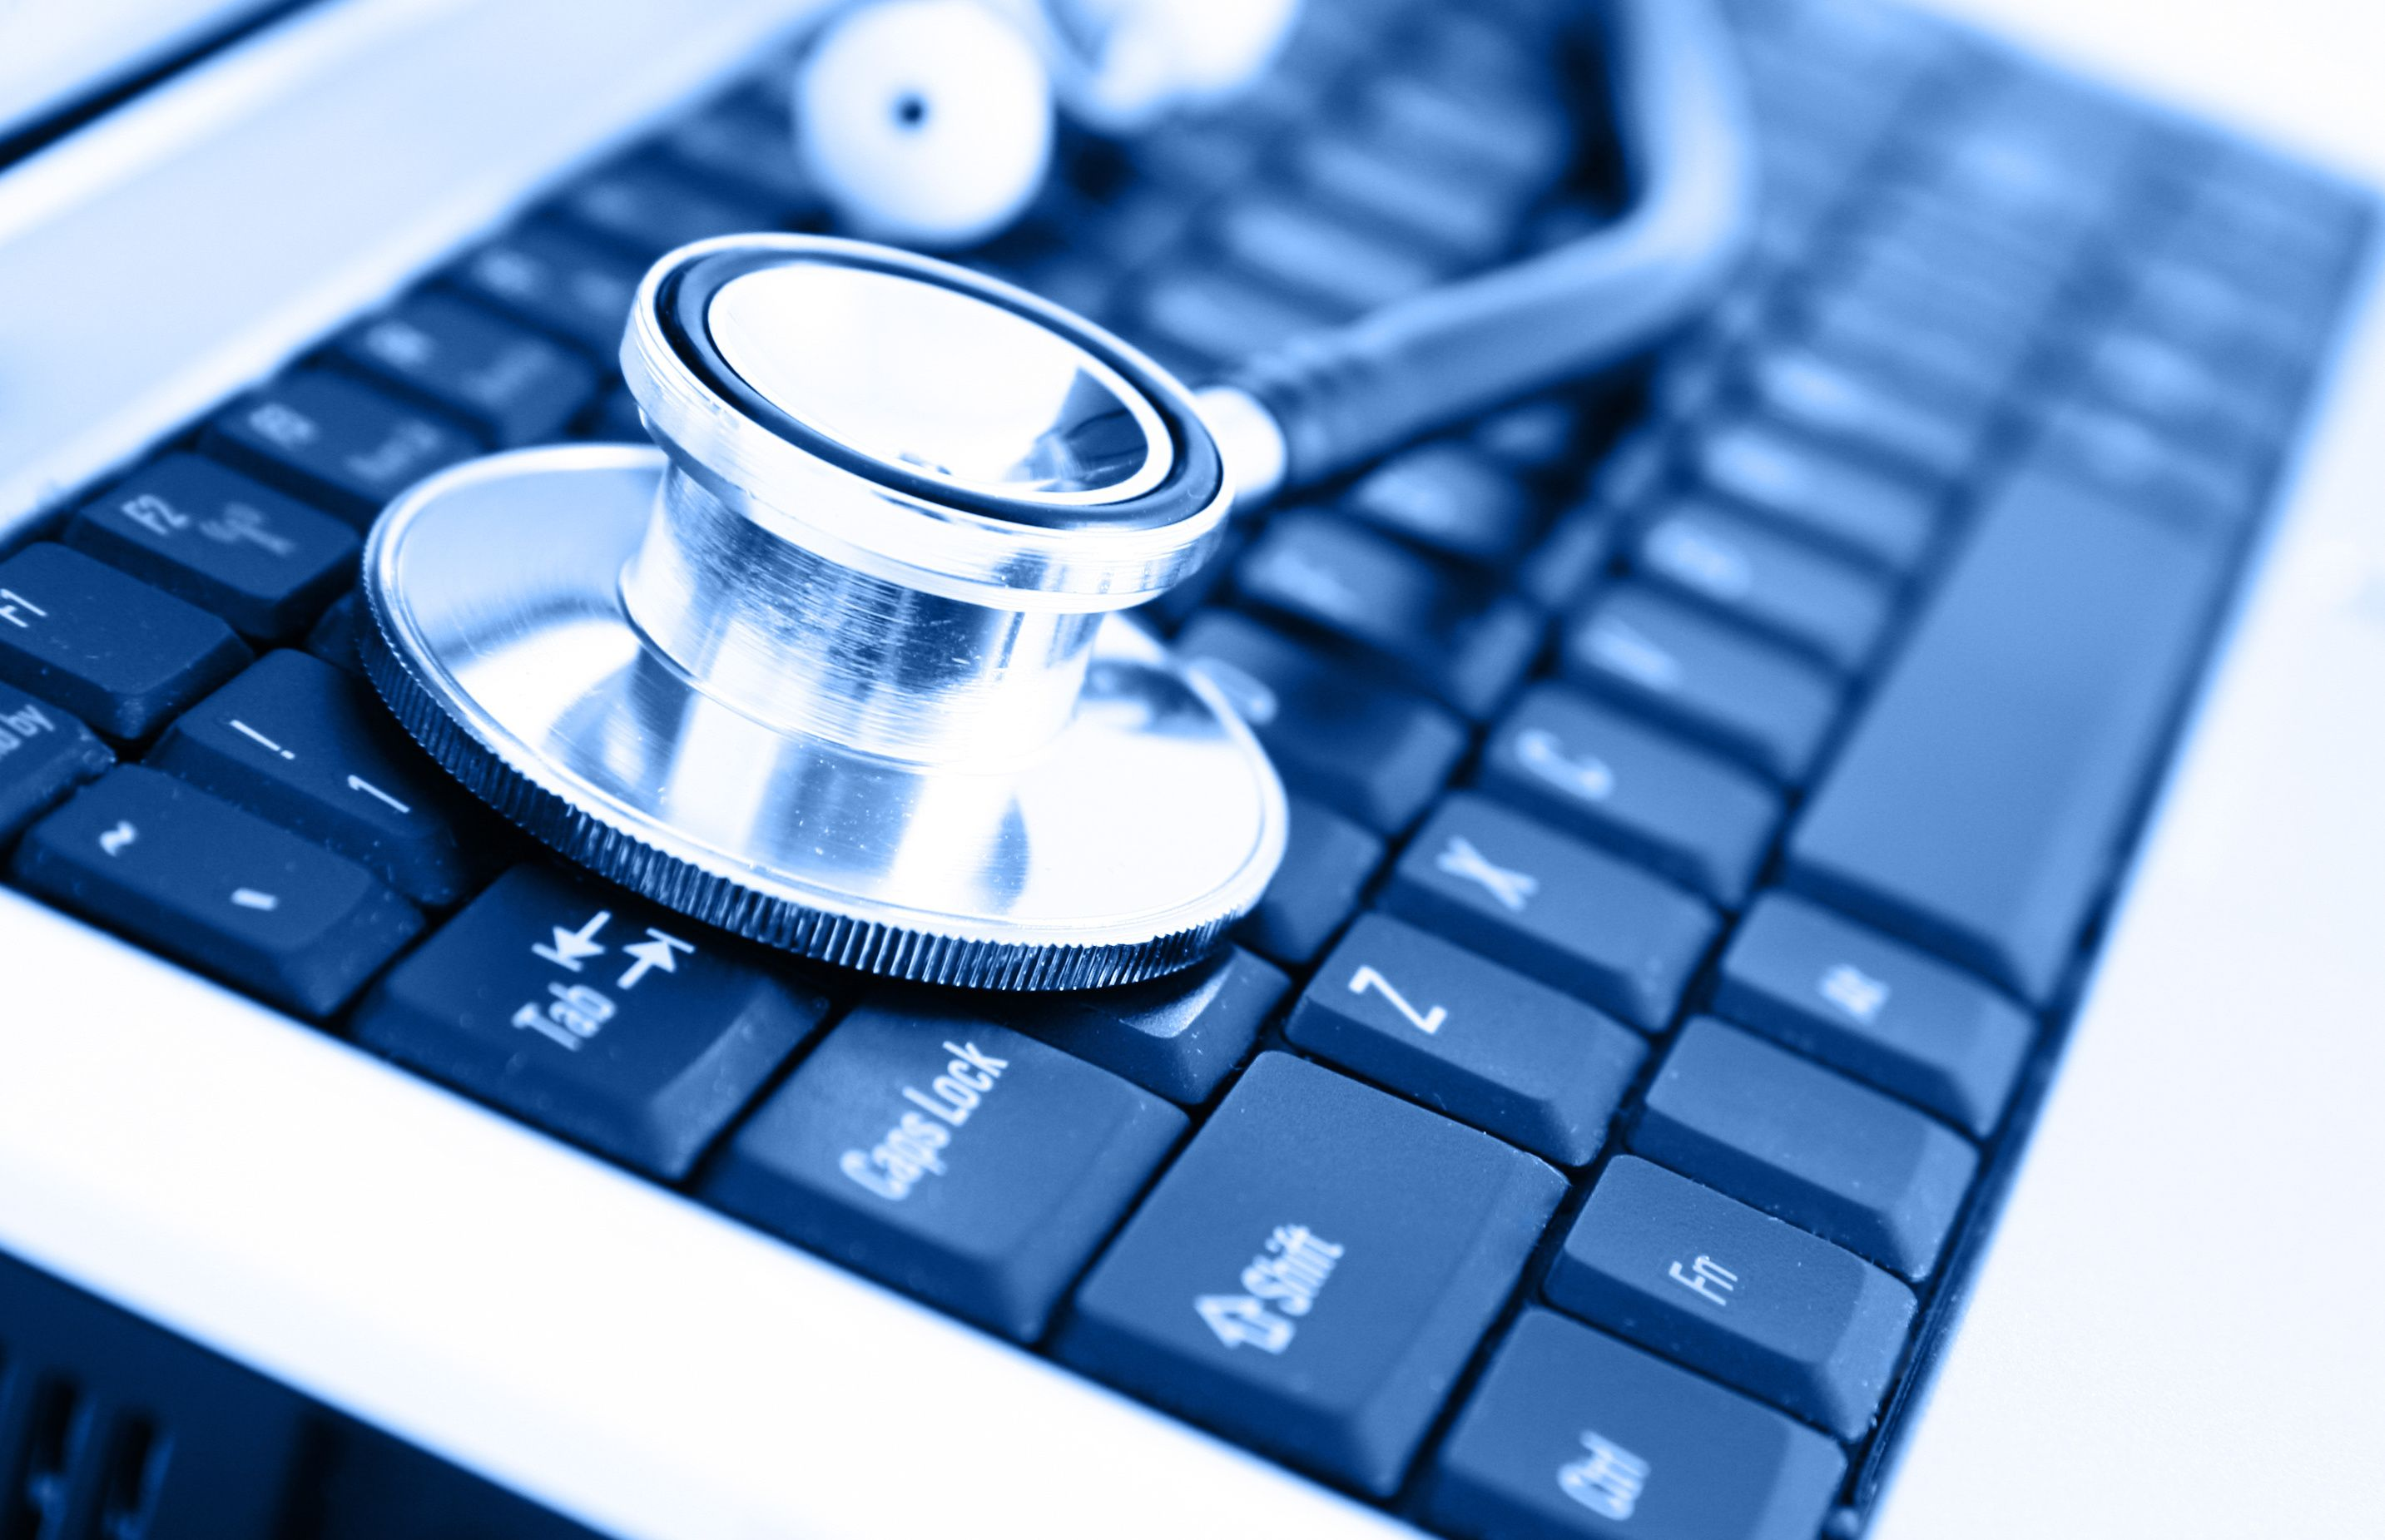 Patient Registry Software Market (With images) Medical